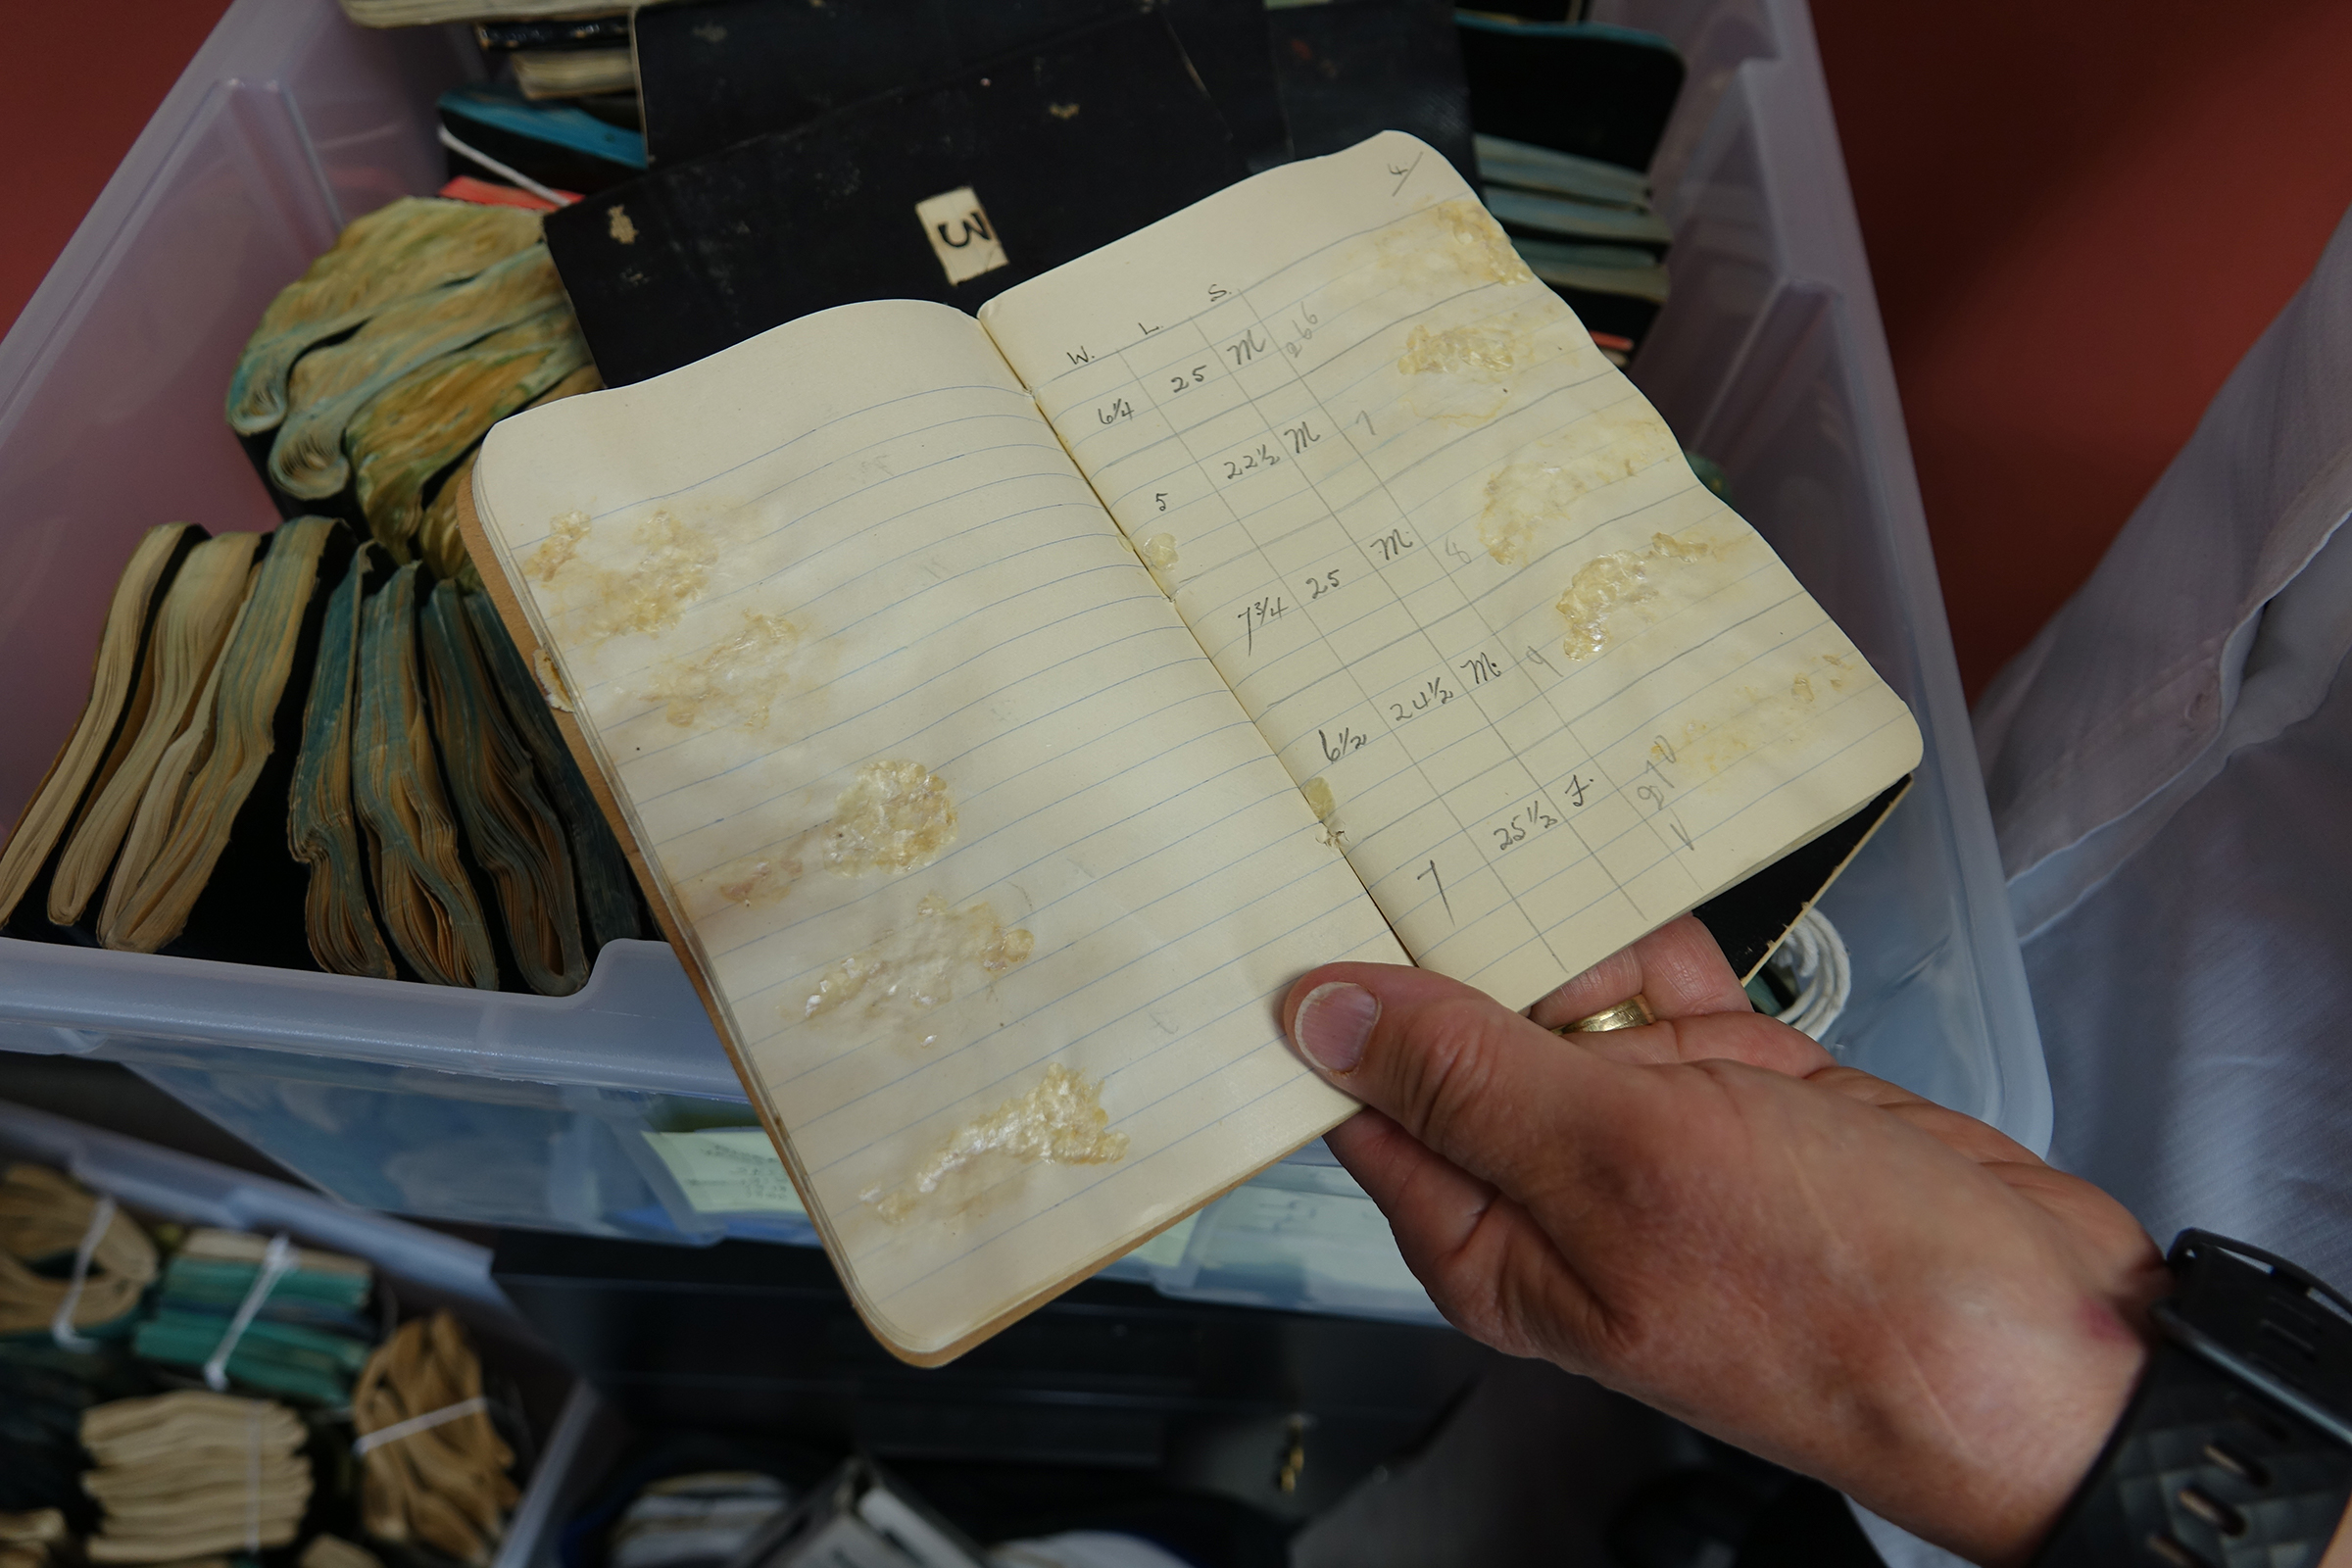 Michael Price holds one of the original sockeye salmon notebooks where fisheries overseer Robert Gibson, in 1919, recorded the length and weight of each fish, and affixed a sample of the fish's scales. Photograph by Lesley Evans Ogden